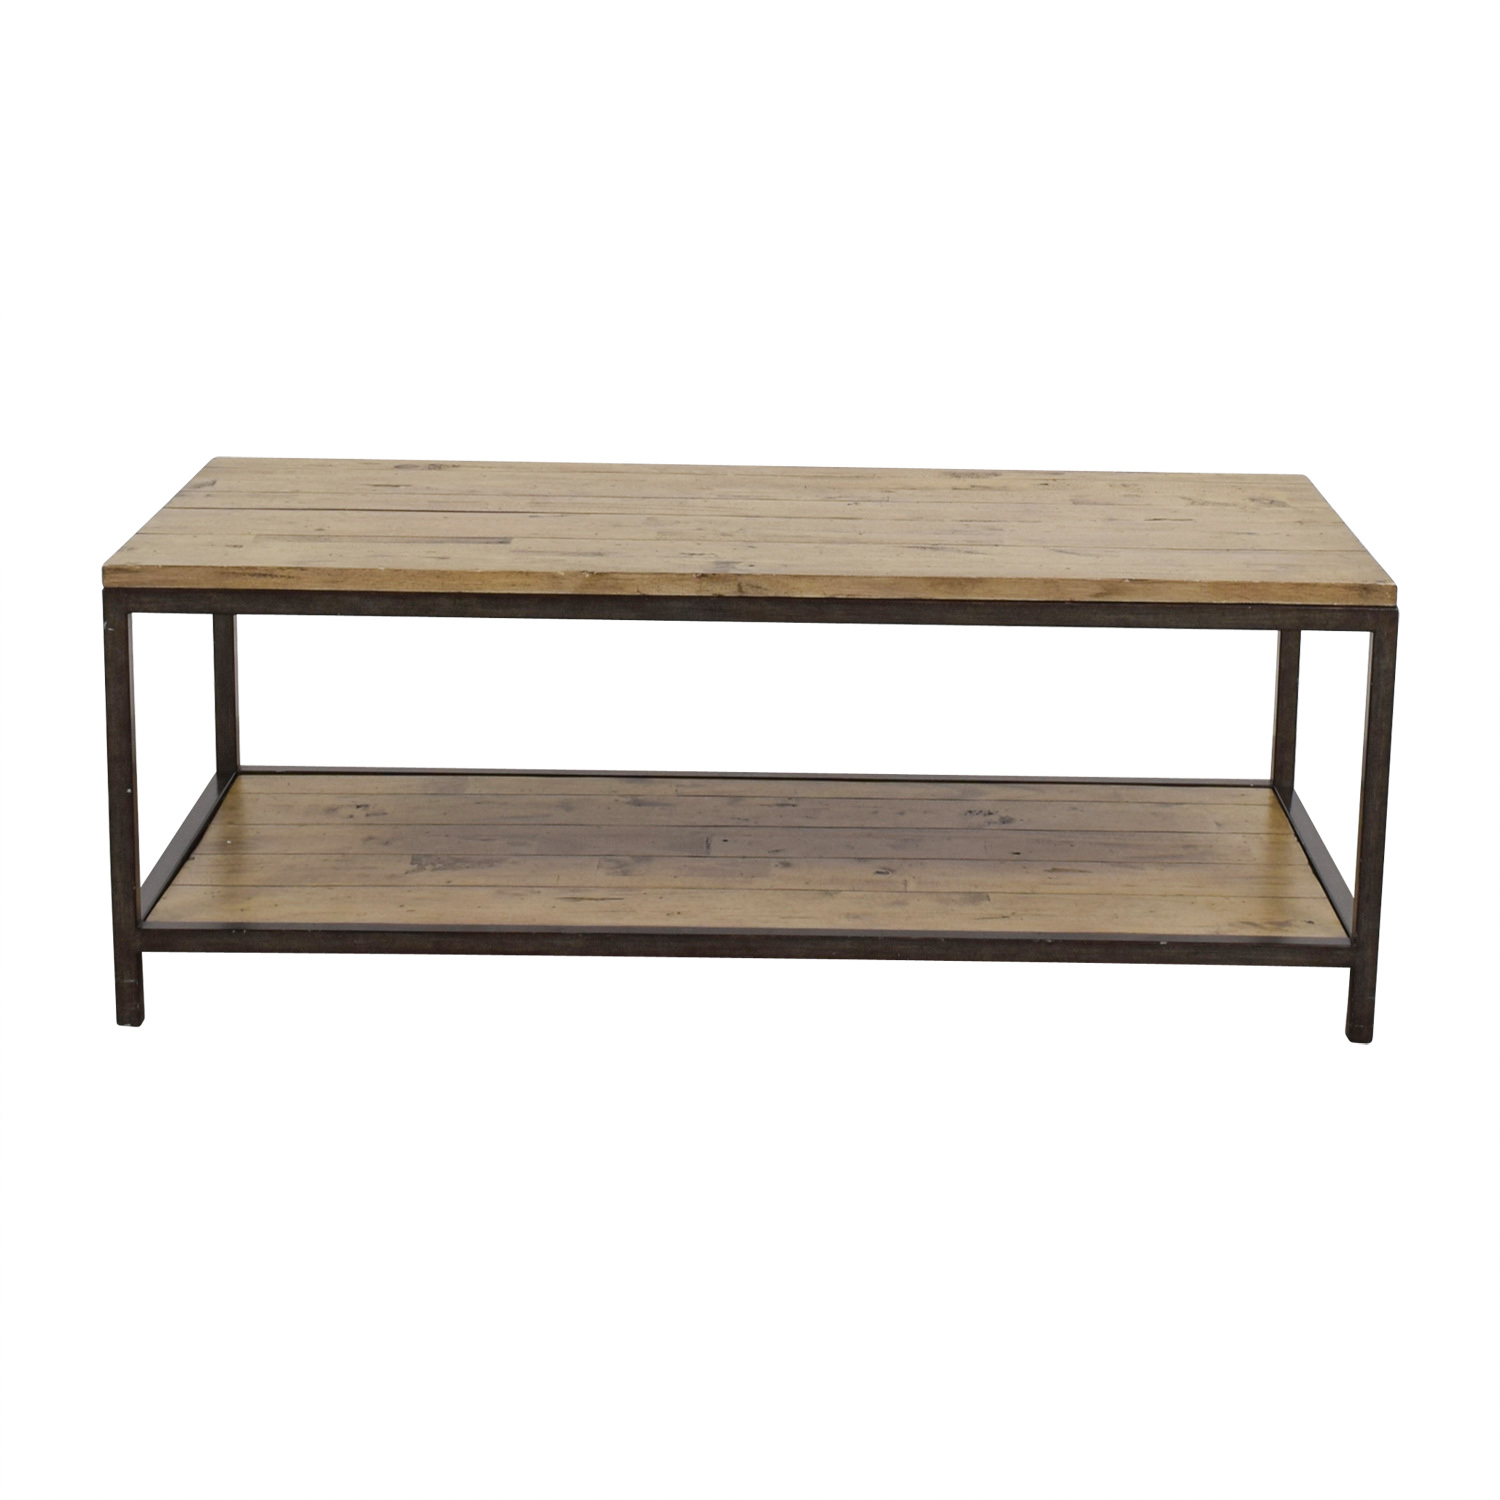 Ballards Design Ballard Designs Rustic Durham Coffee Table for sale